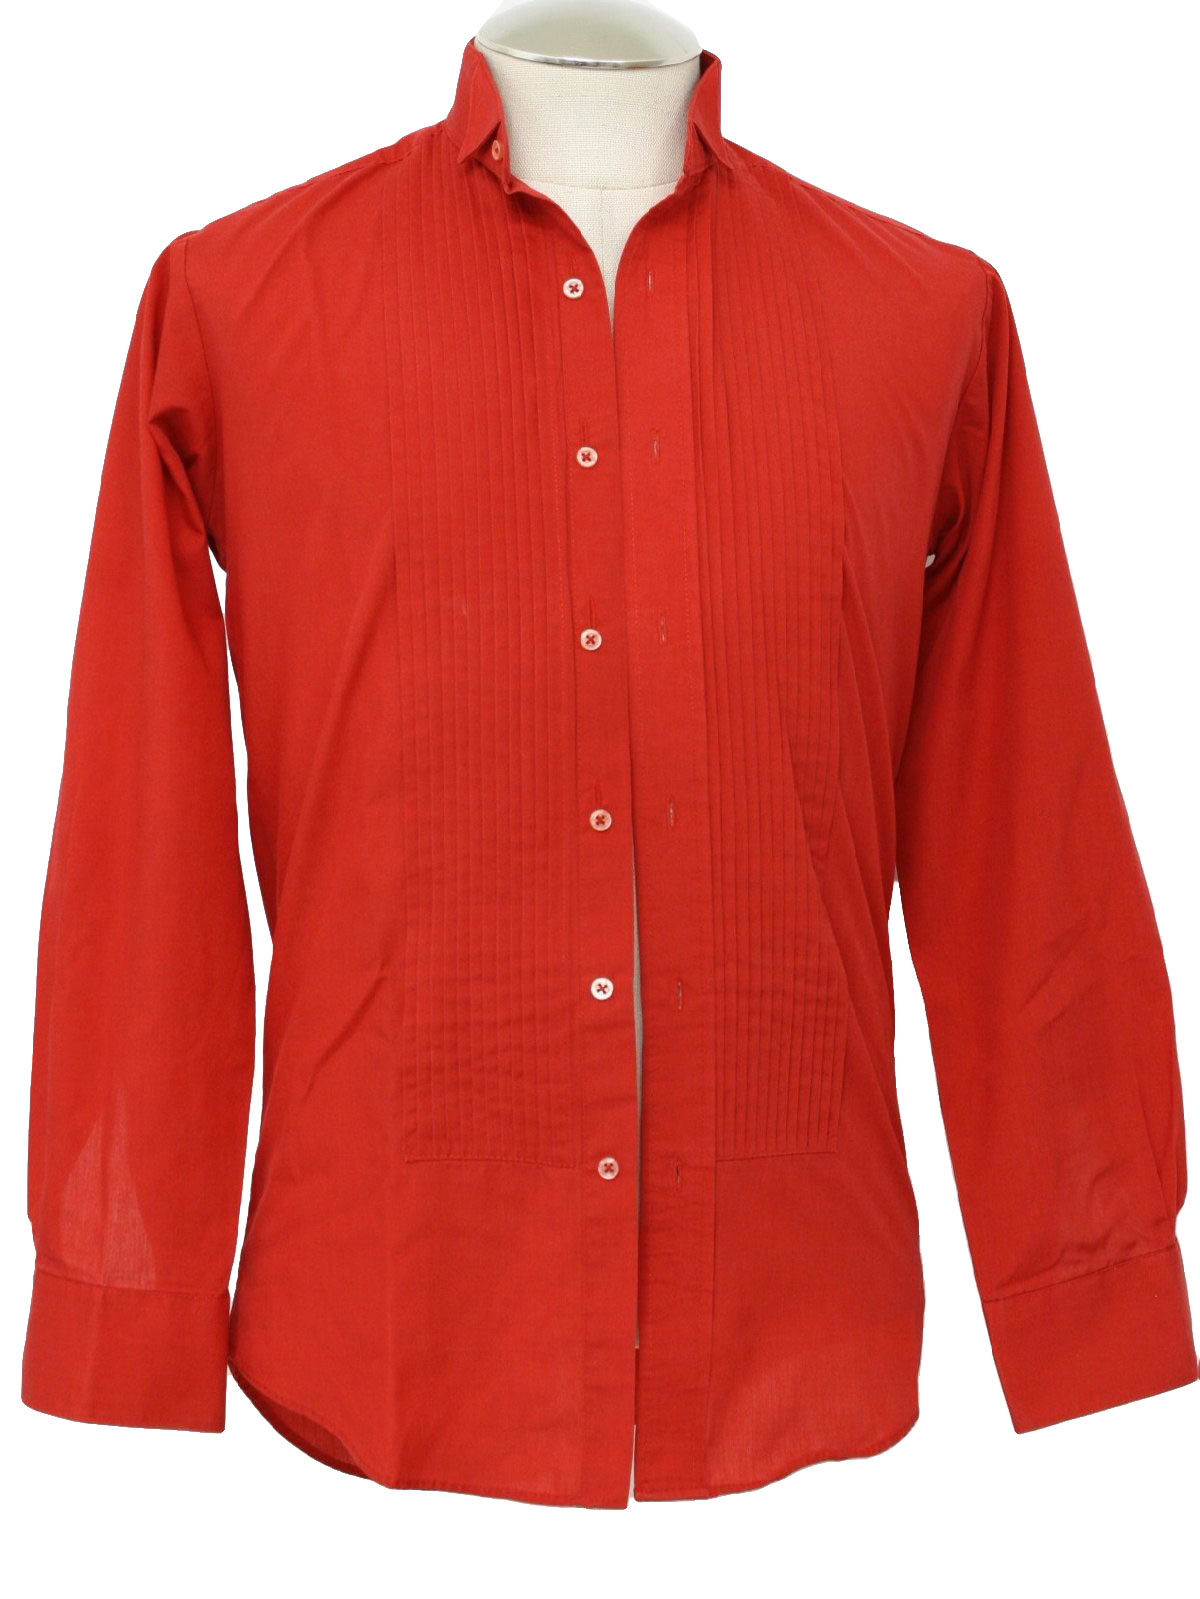 Retro 1980s Shirt: 80s -Classic- Mens red polyester cotton ...